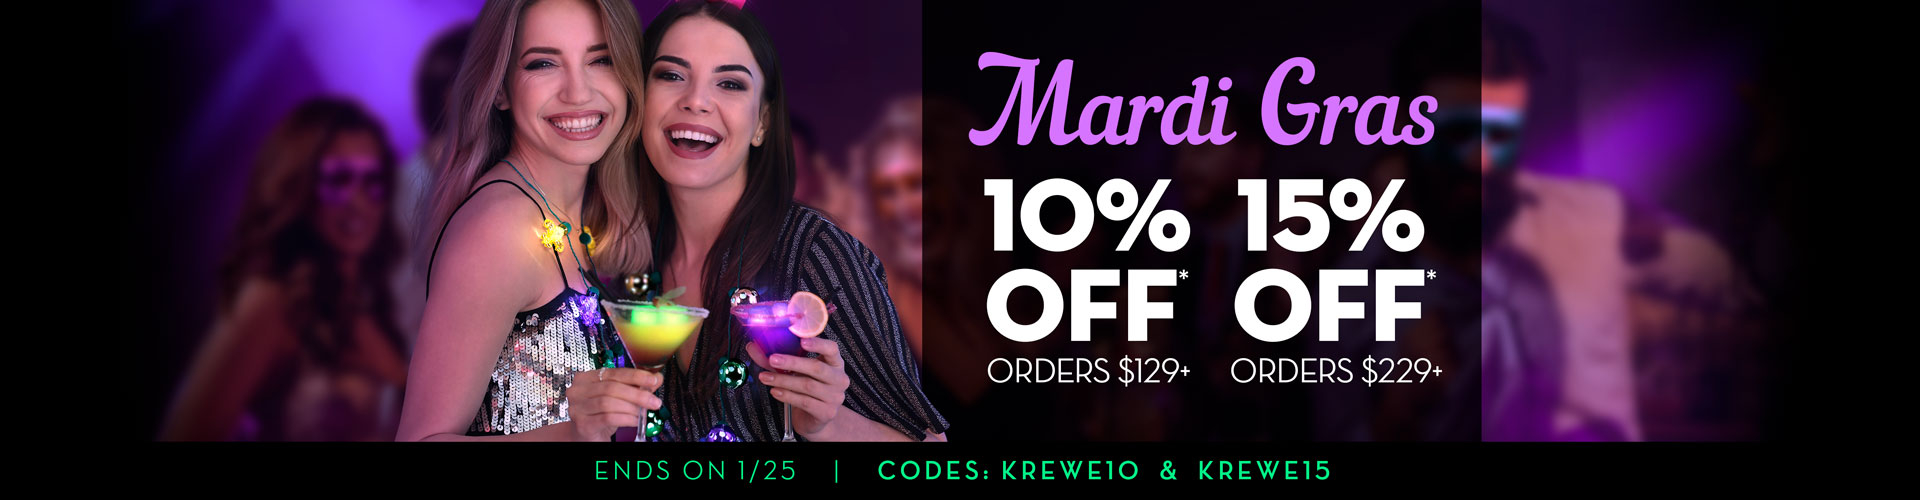 Mardi Gras Preview Offer Banner